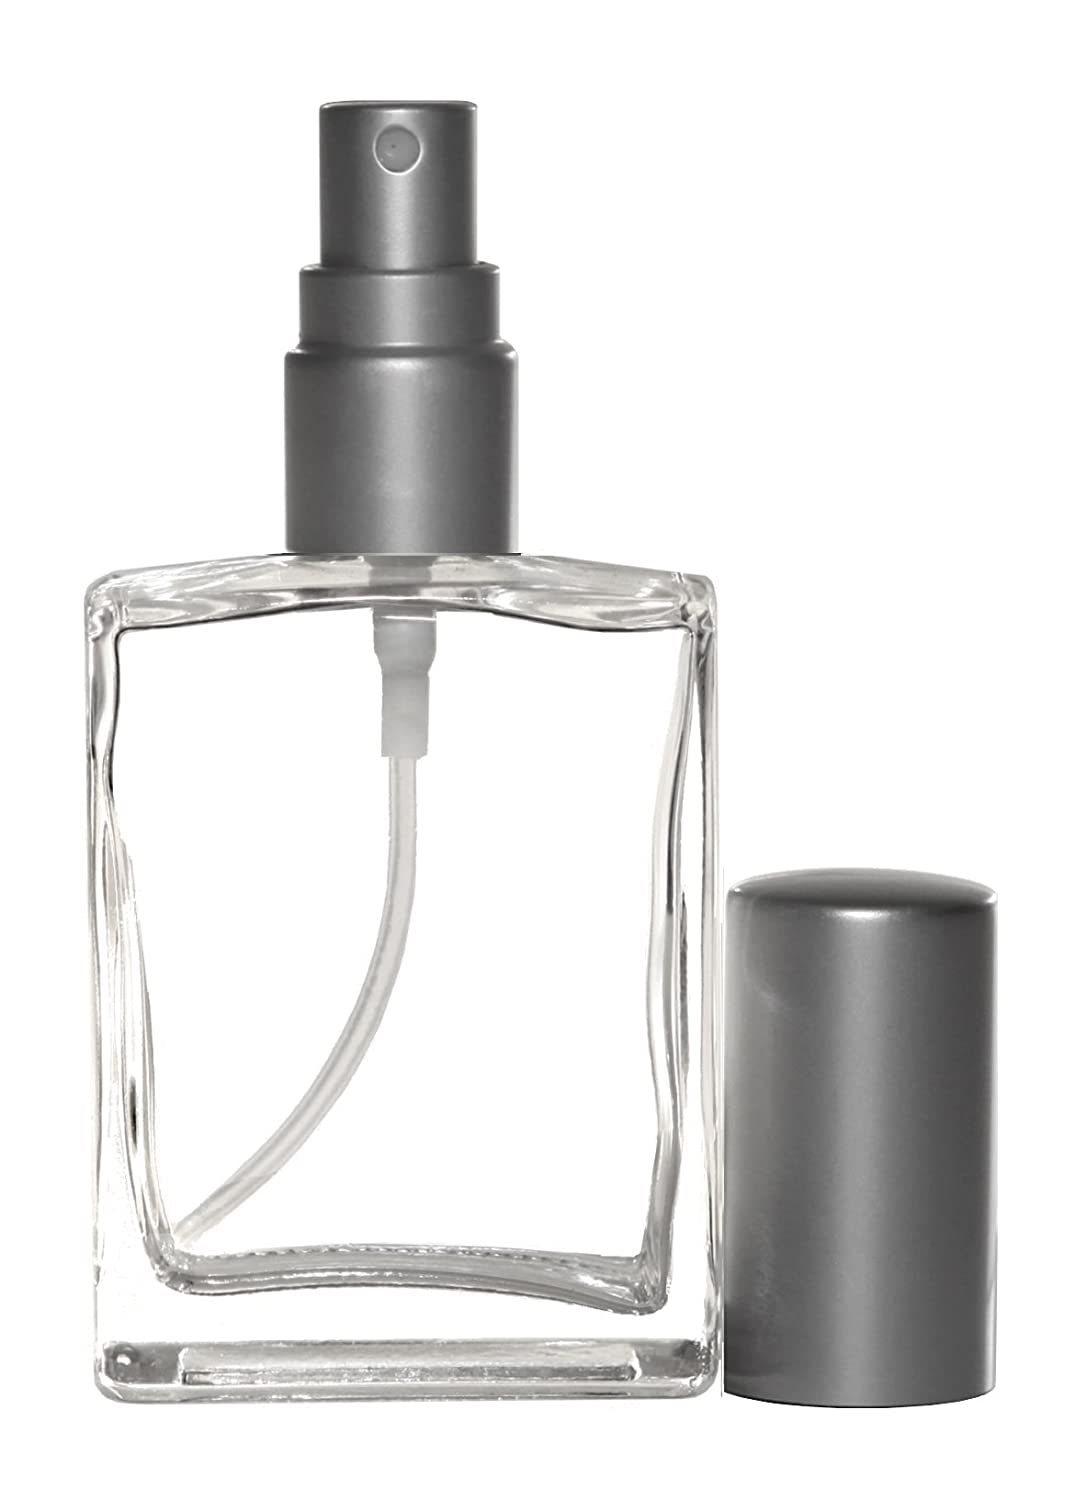 Riverrun Perfume Atomizer, Flat Glass Bottle, Matte Silver Fine Mist Sprayer 1 2 oz. 15ml Set of 6